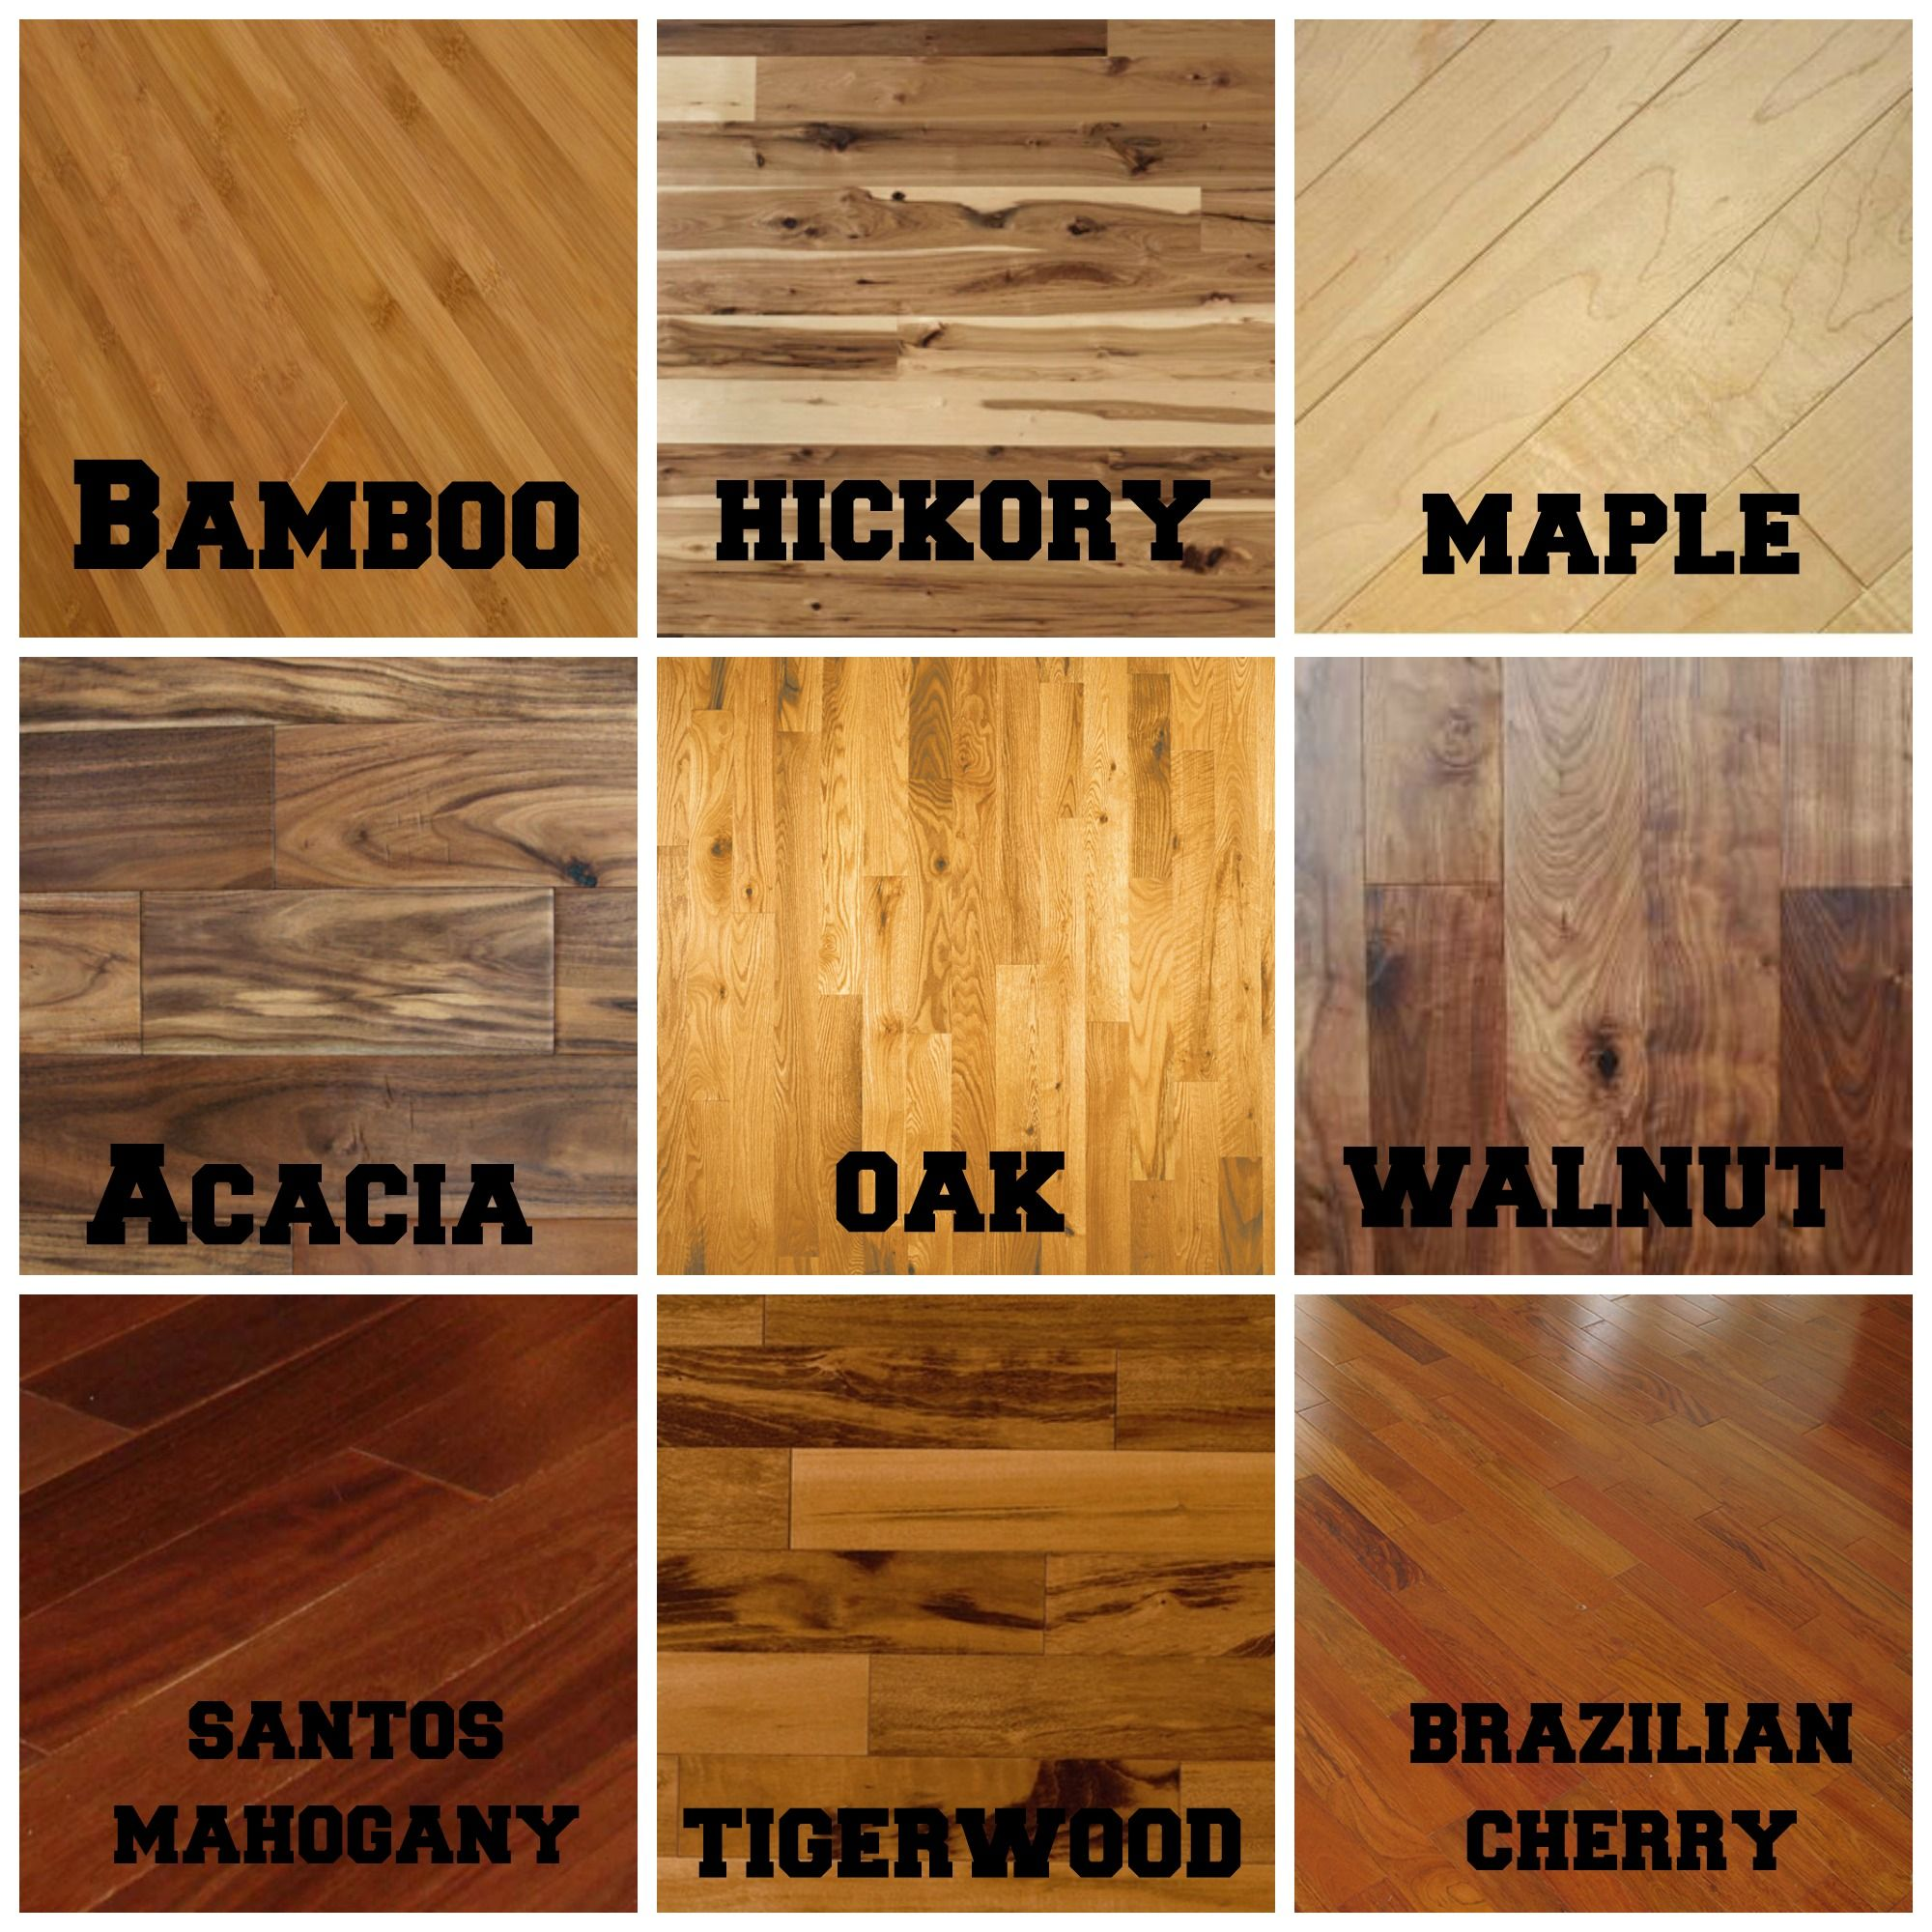 Hardwood flooring types wood design inspiration 23818 for Types of hardwood floors